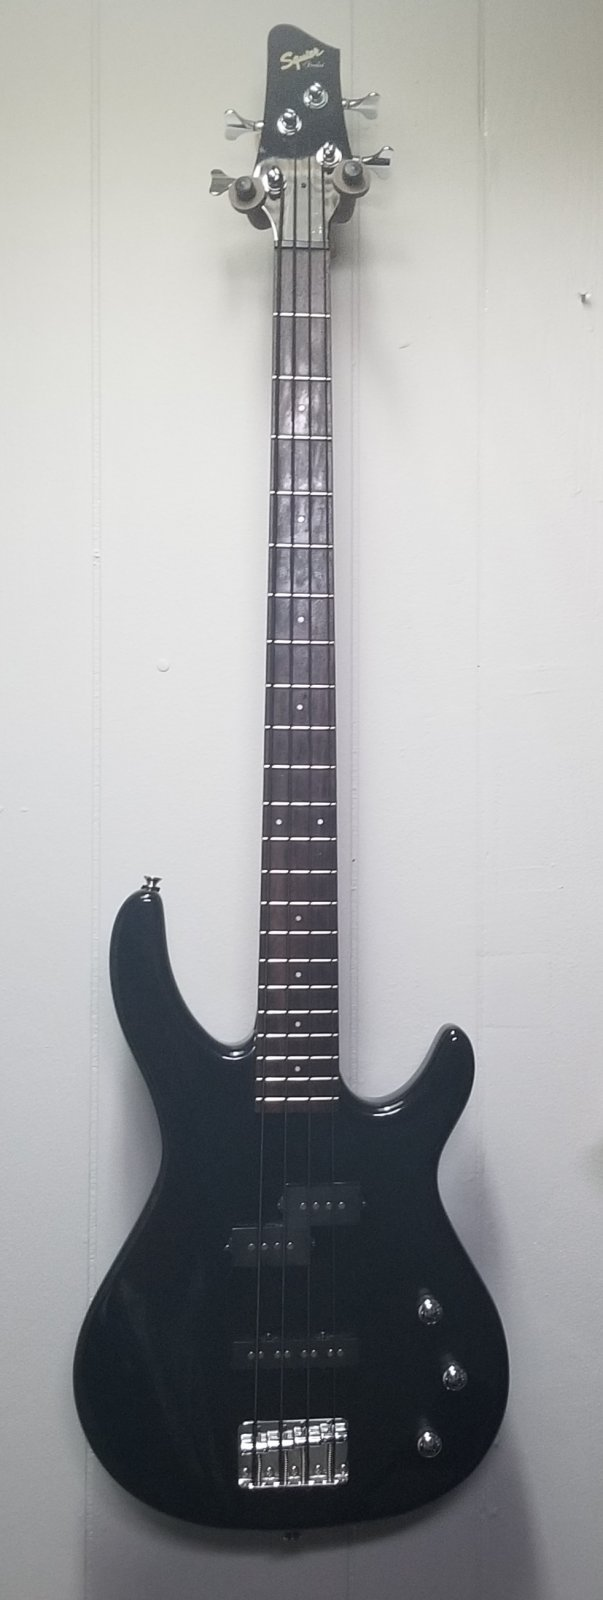 Squier Bass; Metallic Black... Used